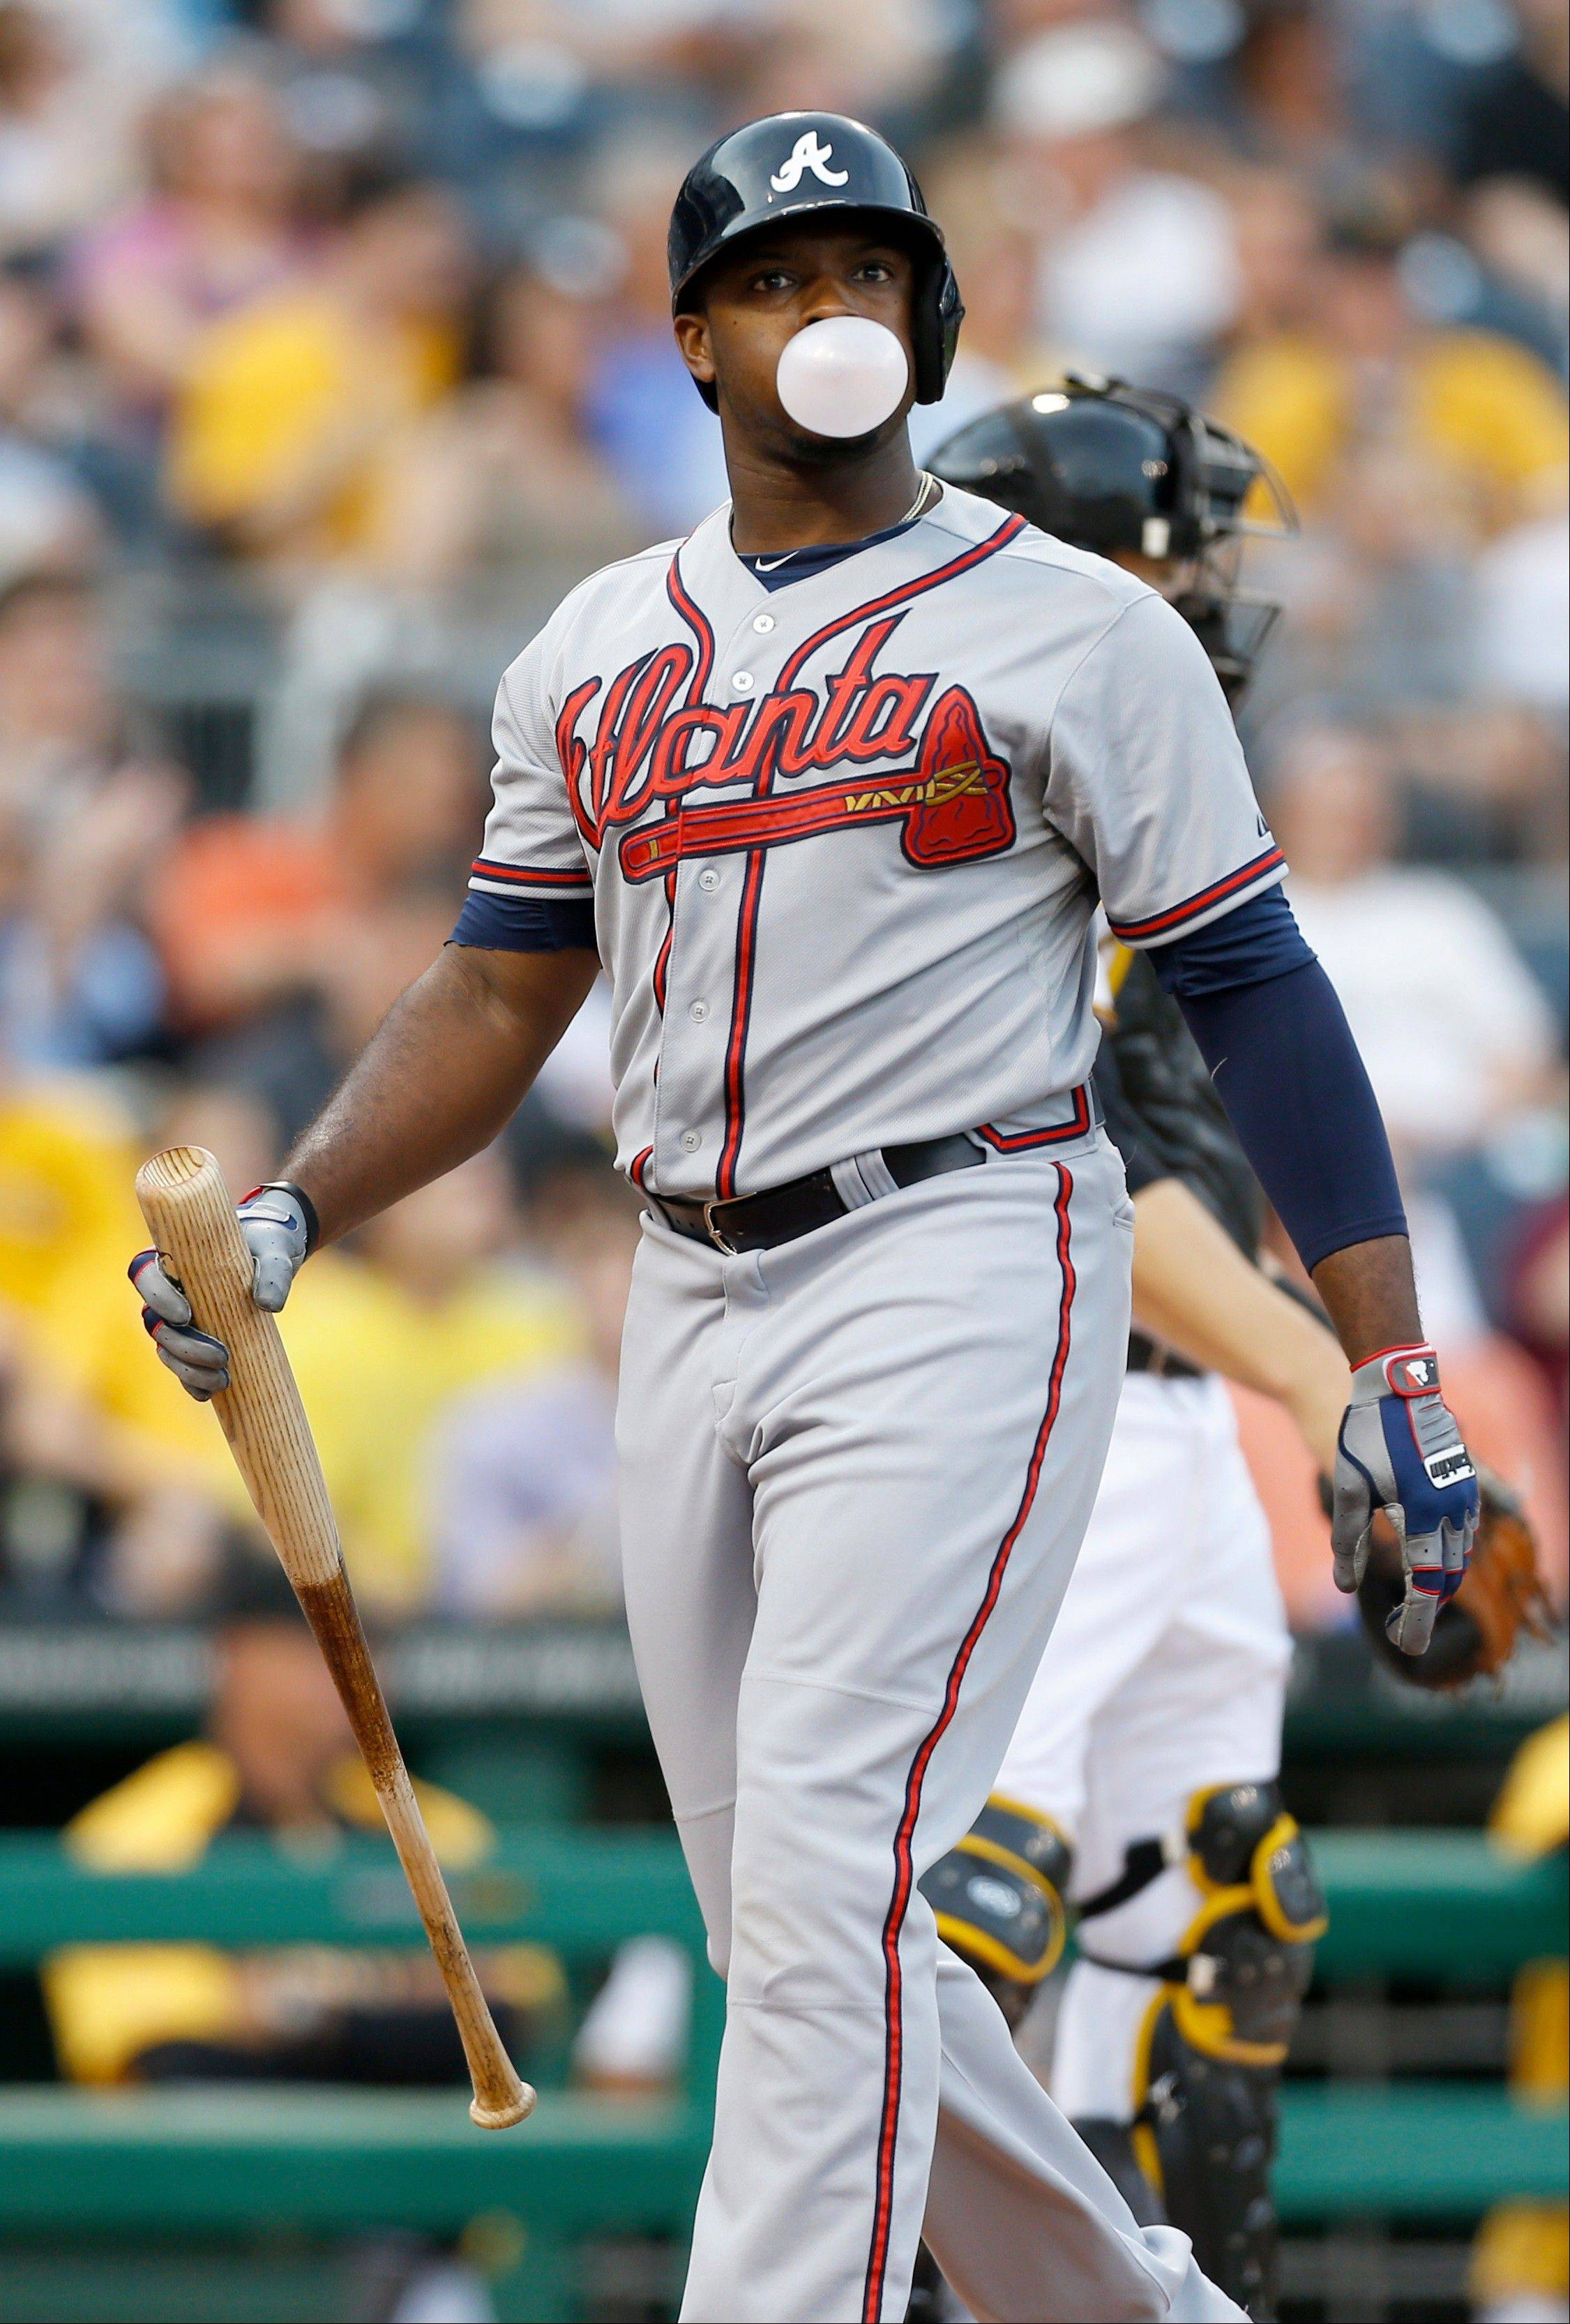 Atlanta Braves' Justin Upton blows a bubblegum bubble on his way back to the dugout after striking out in the first inning of a baseball game against the Pittsburgh Pirates, Thursday, April 18, 2013, in Pittsburgh.